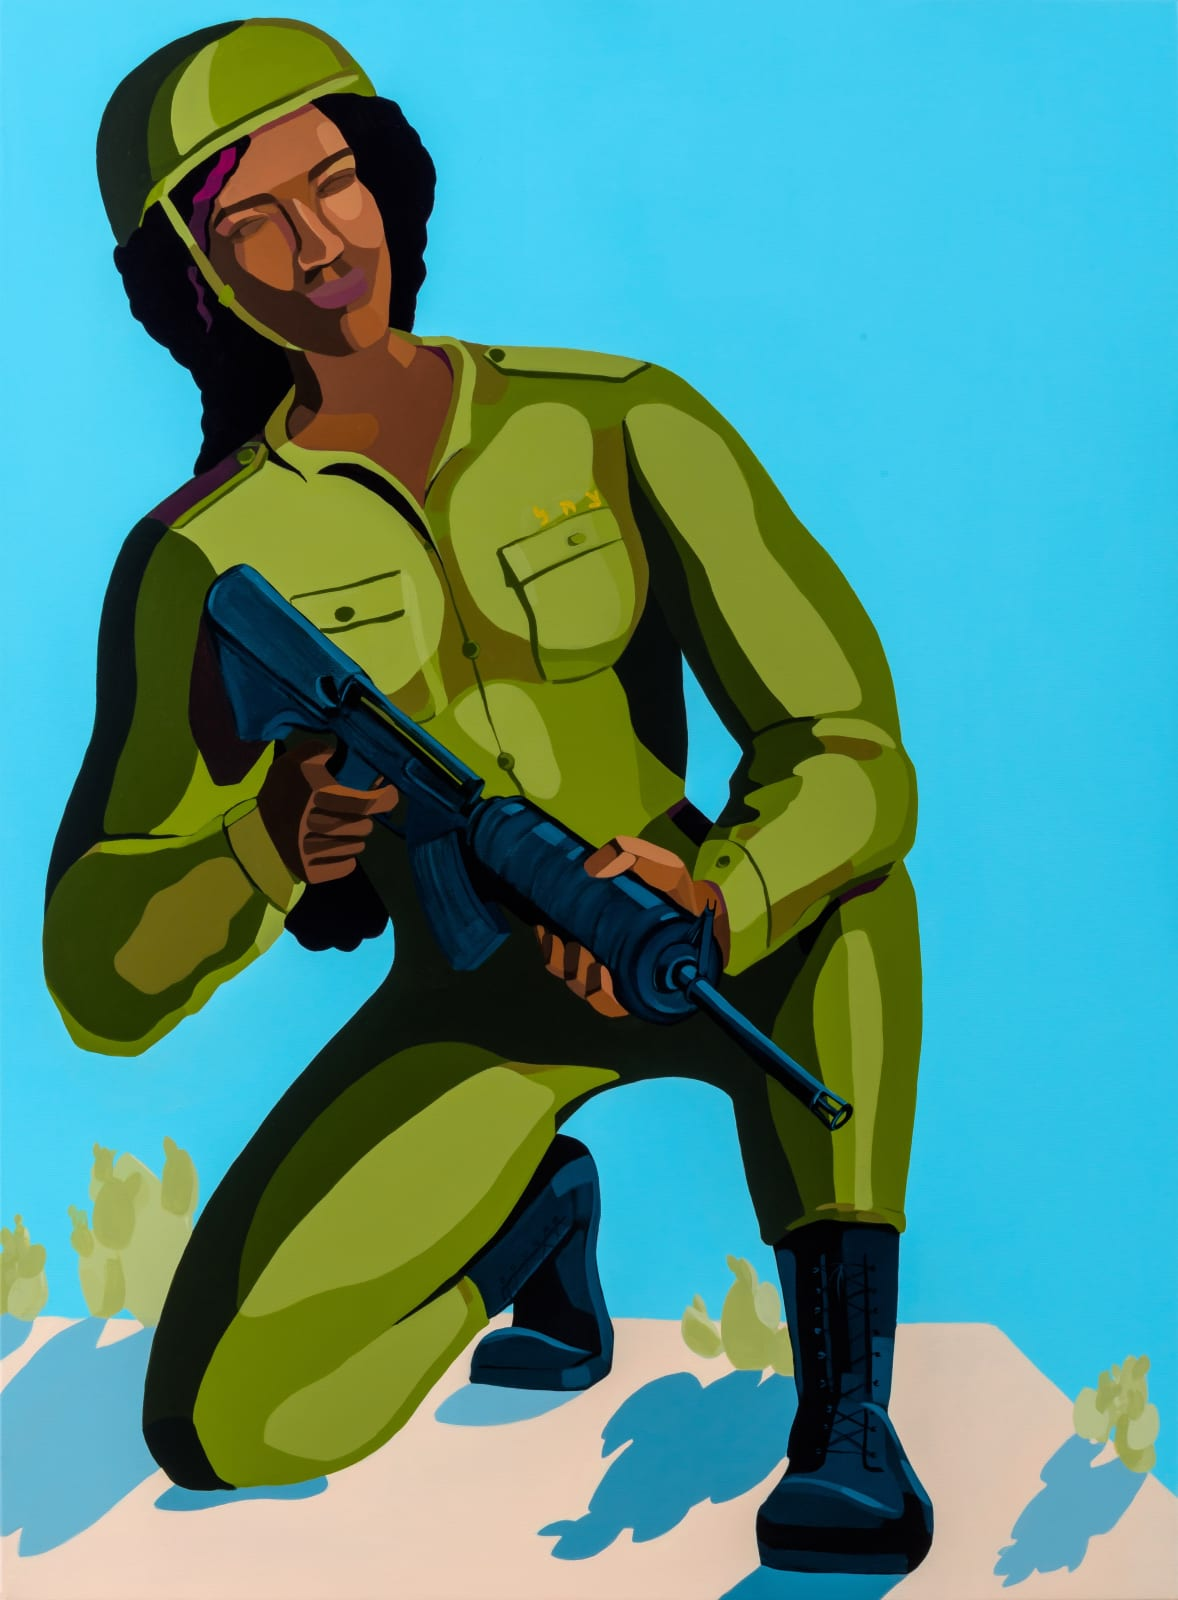 Nirit Takele, Soldier 5328991, 2019. Courtesy of the Artist and Addis Fine Art